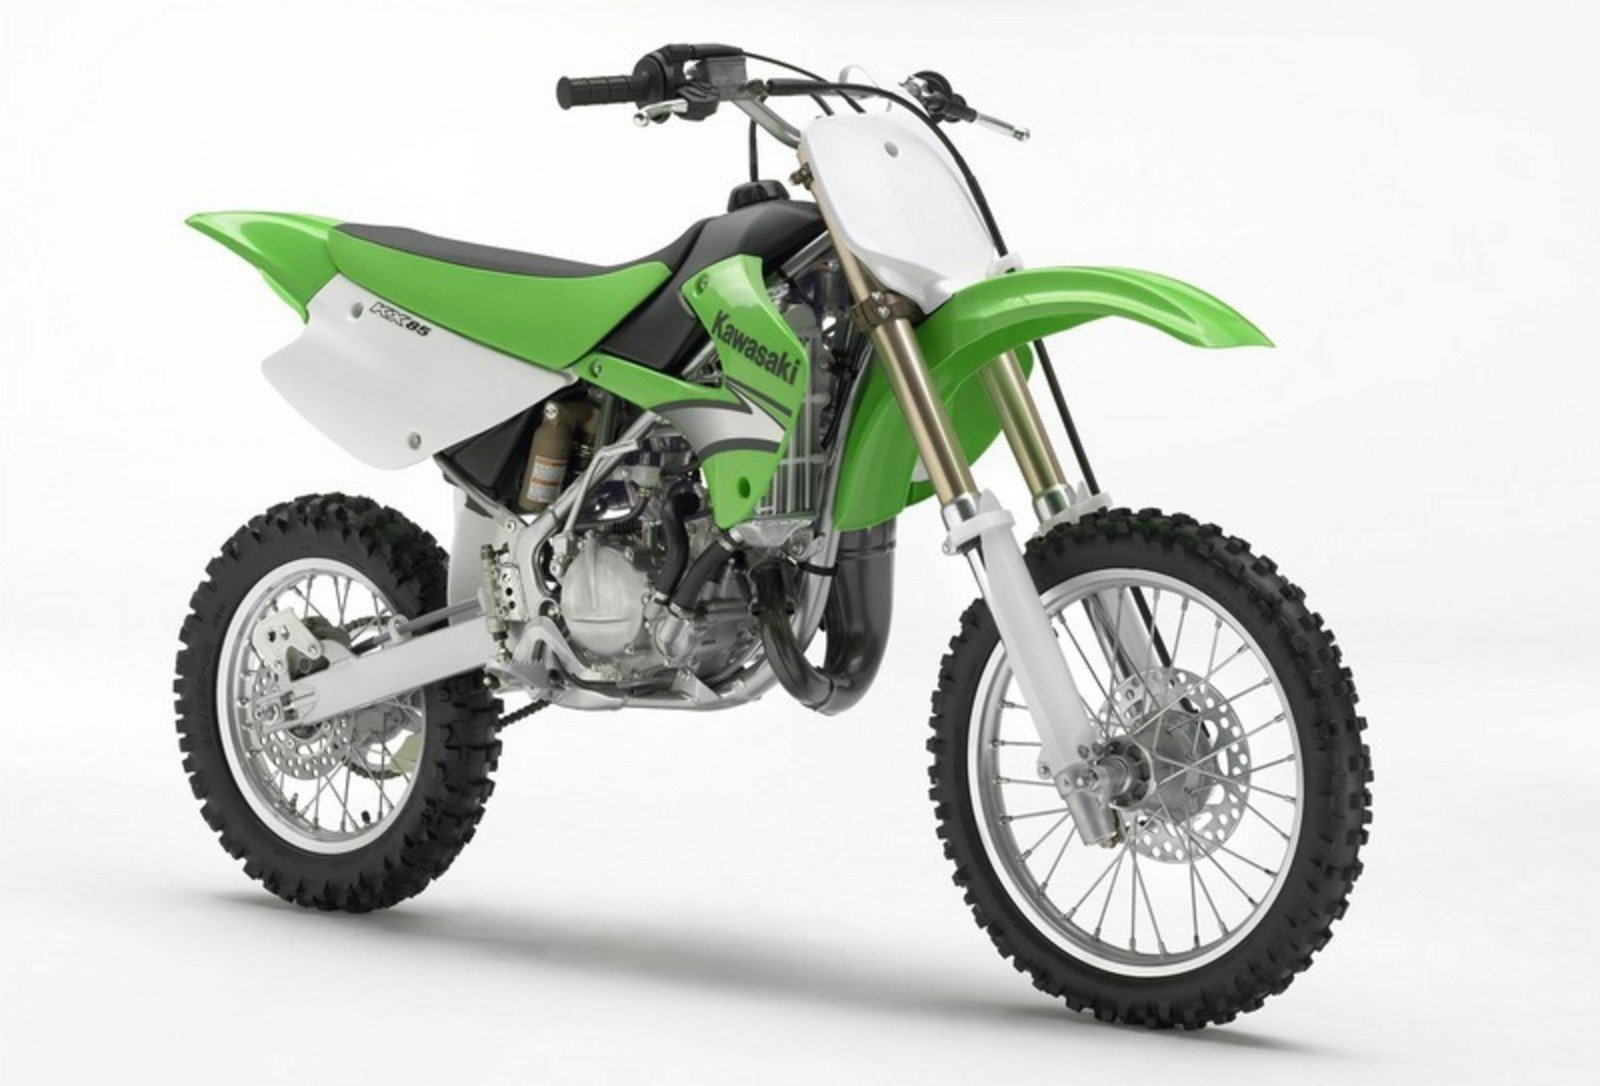 2007 kawasaki kx85 review gallery top speed. Black Bedroom Furniture Sets. Home Design Ideas